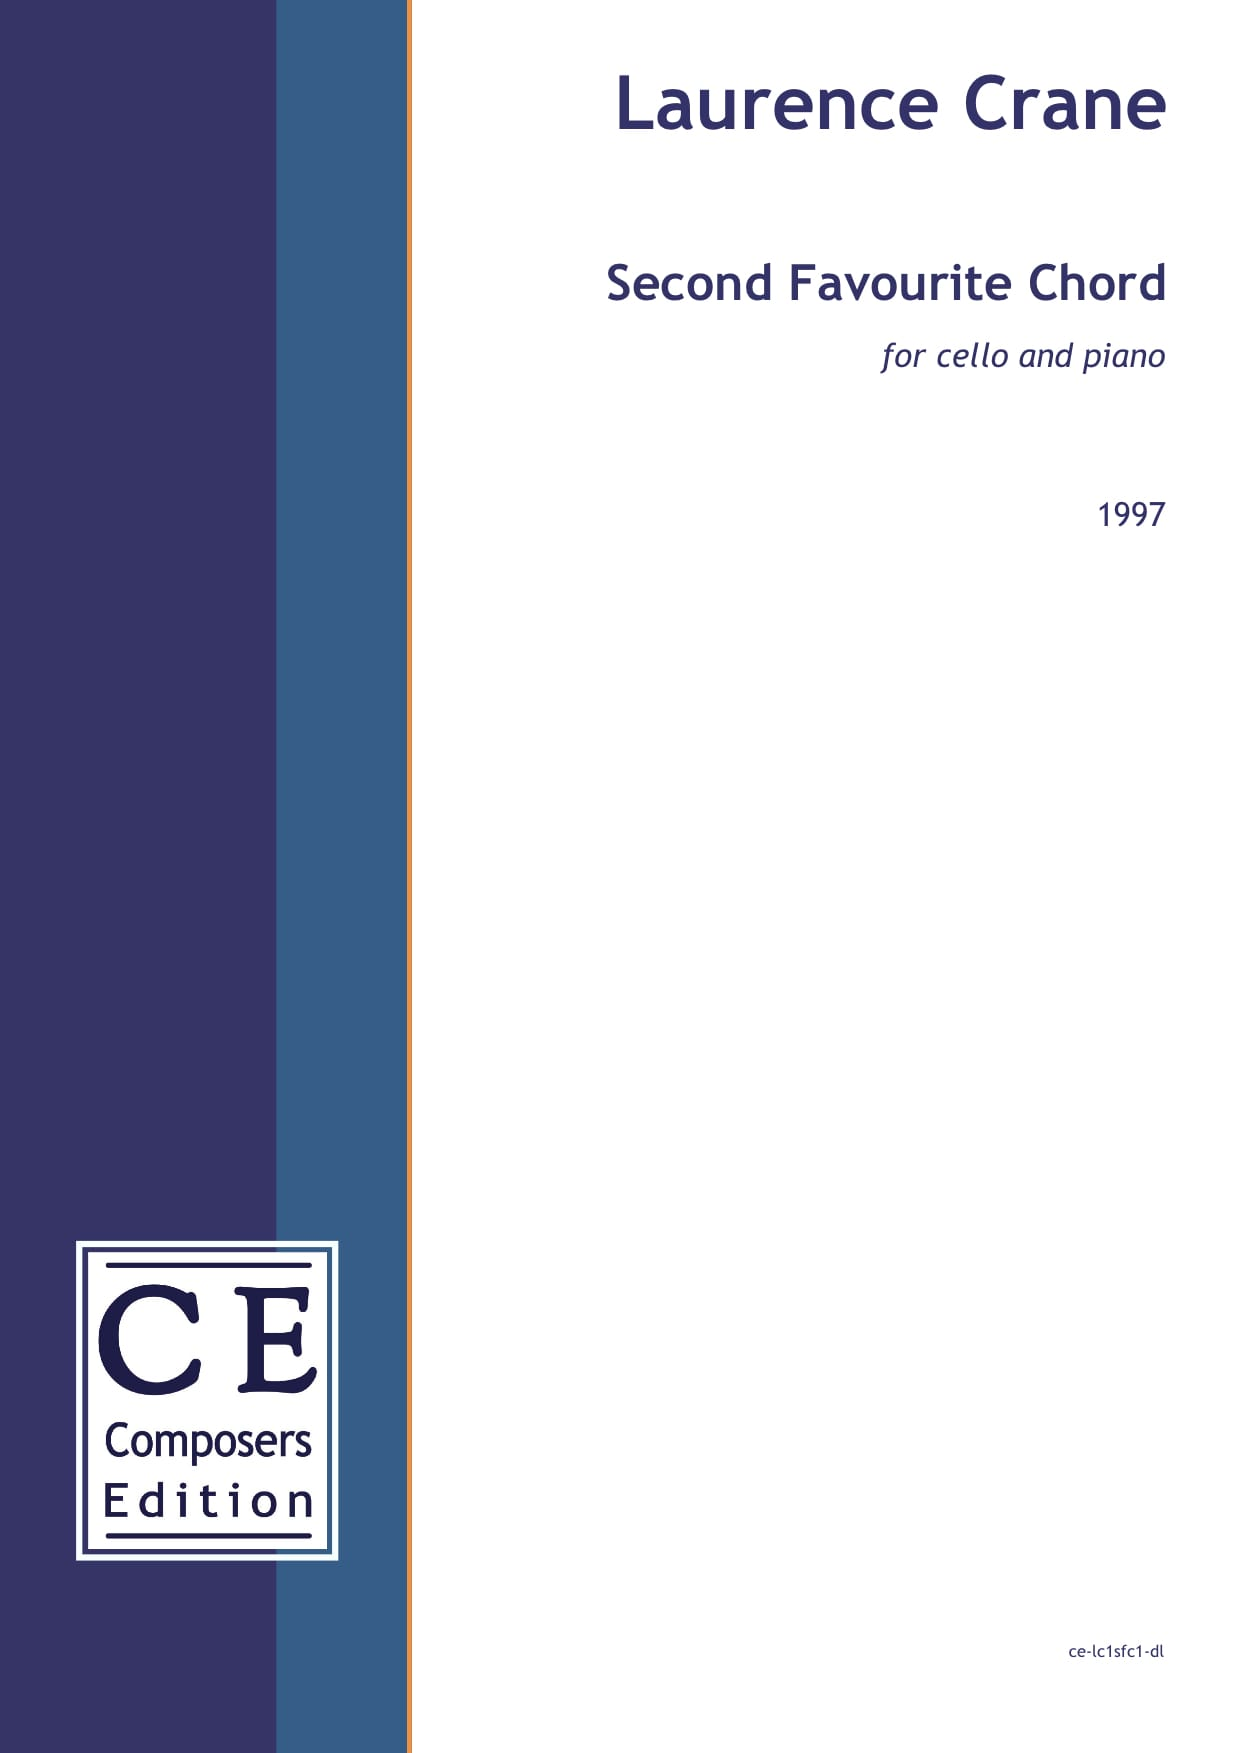 Laurence Crane: Second Favourite Chord for cello and piano